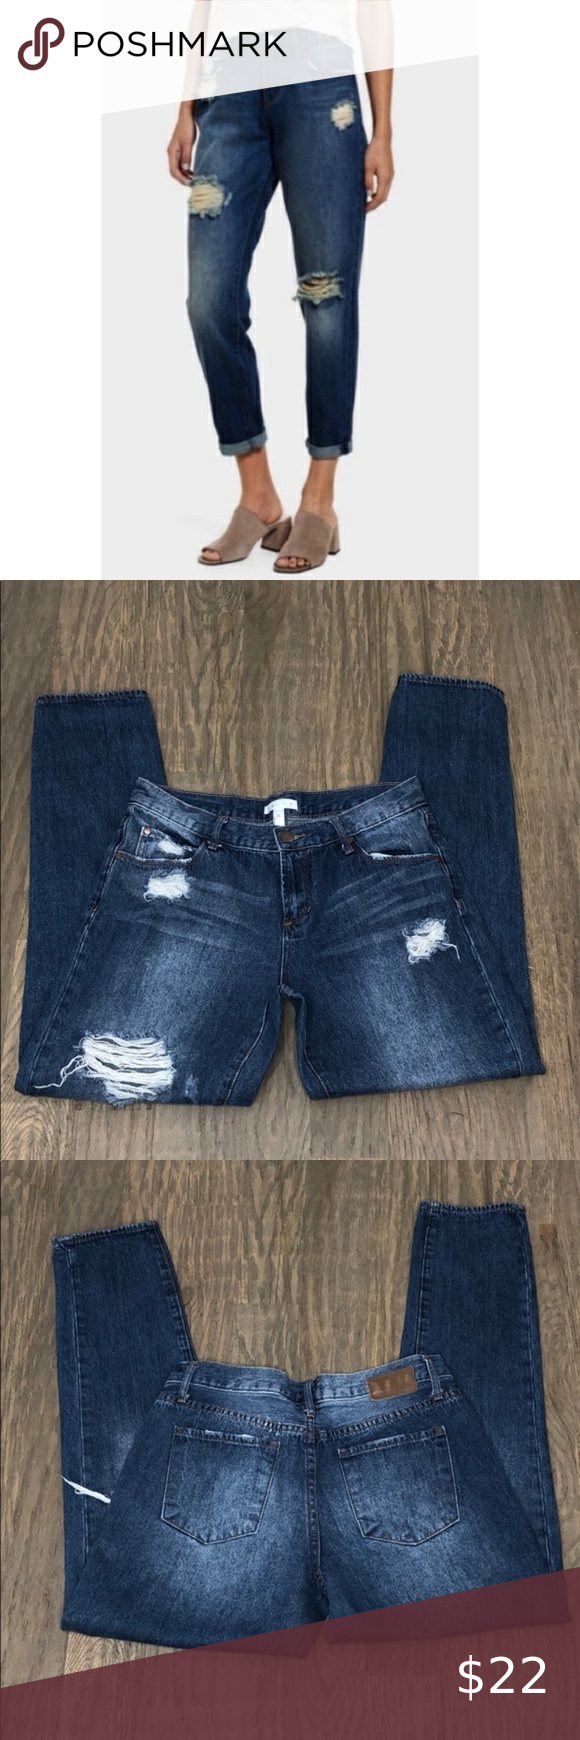 Leith Ripped High Waist Boyfriend Jeans 25 Leith Ripped High Waist Boyfriend Jeans  Size: 25 Cut with a high waist and cropped May be worn cuffed at hem Shredded patches to complete the vintage-inspired look.  27